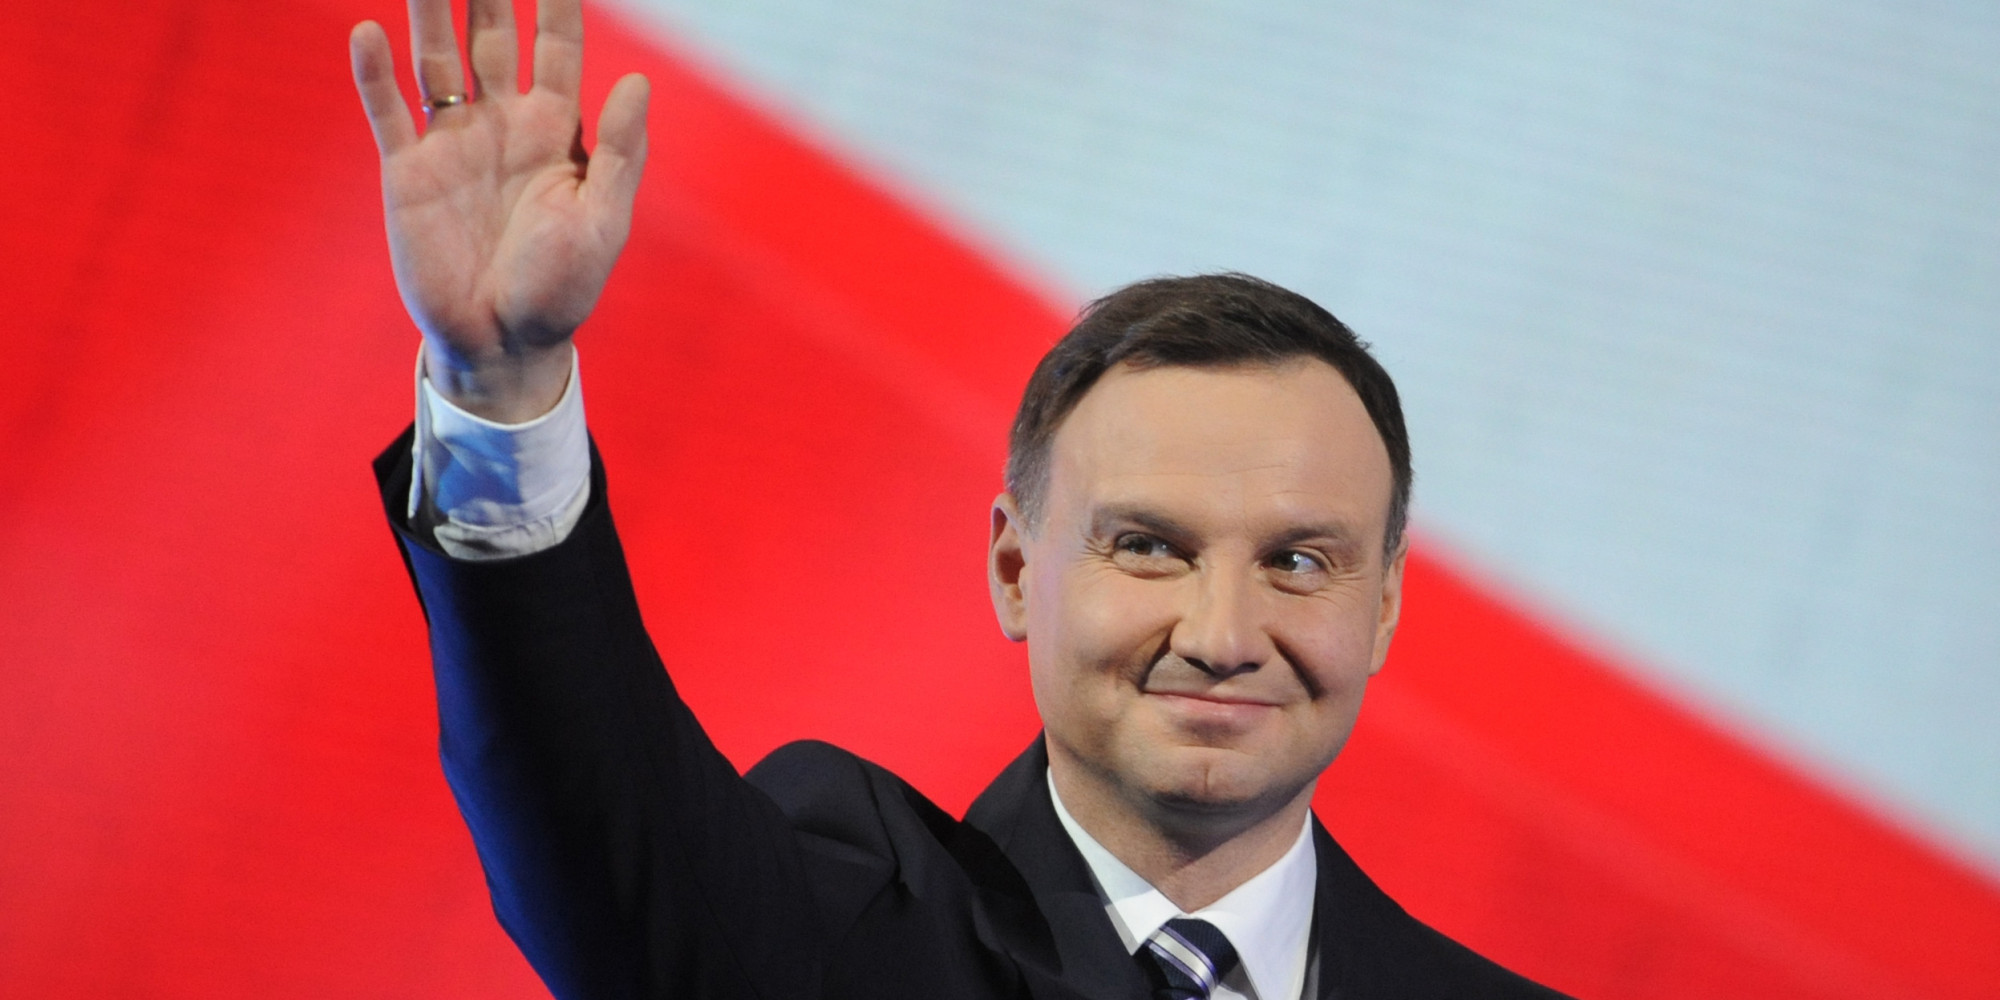 Andrzej Duda Elected Poland's New President, Incumbent ...